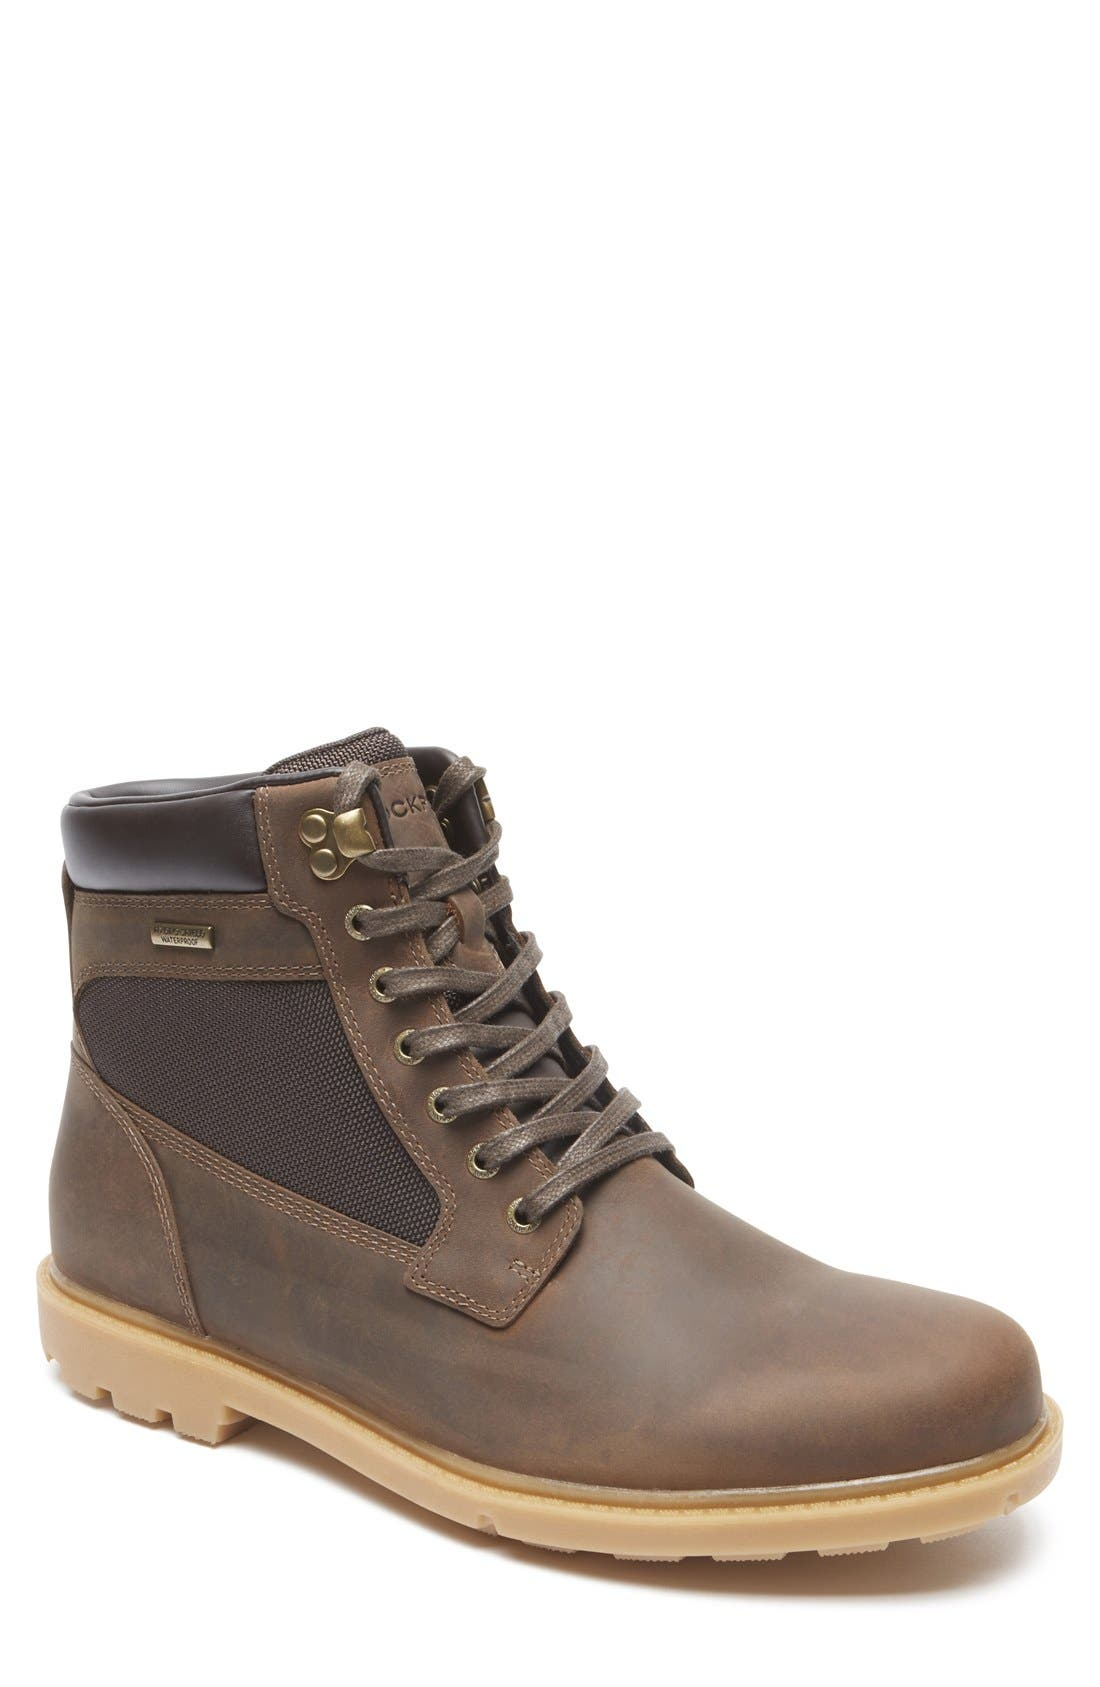 Alternate Image 1 Selected - Rockport 'Rugged Bucks High' Waterproof Boot (Men)